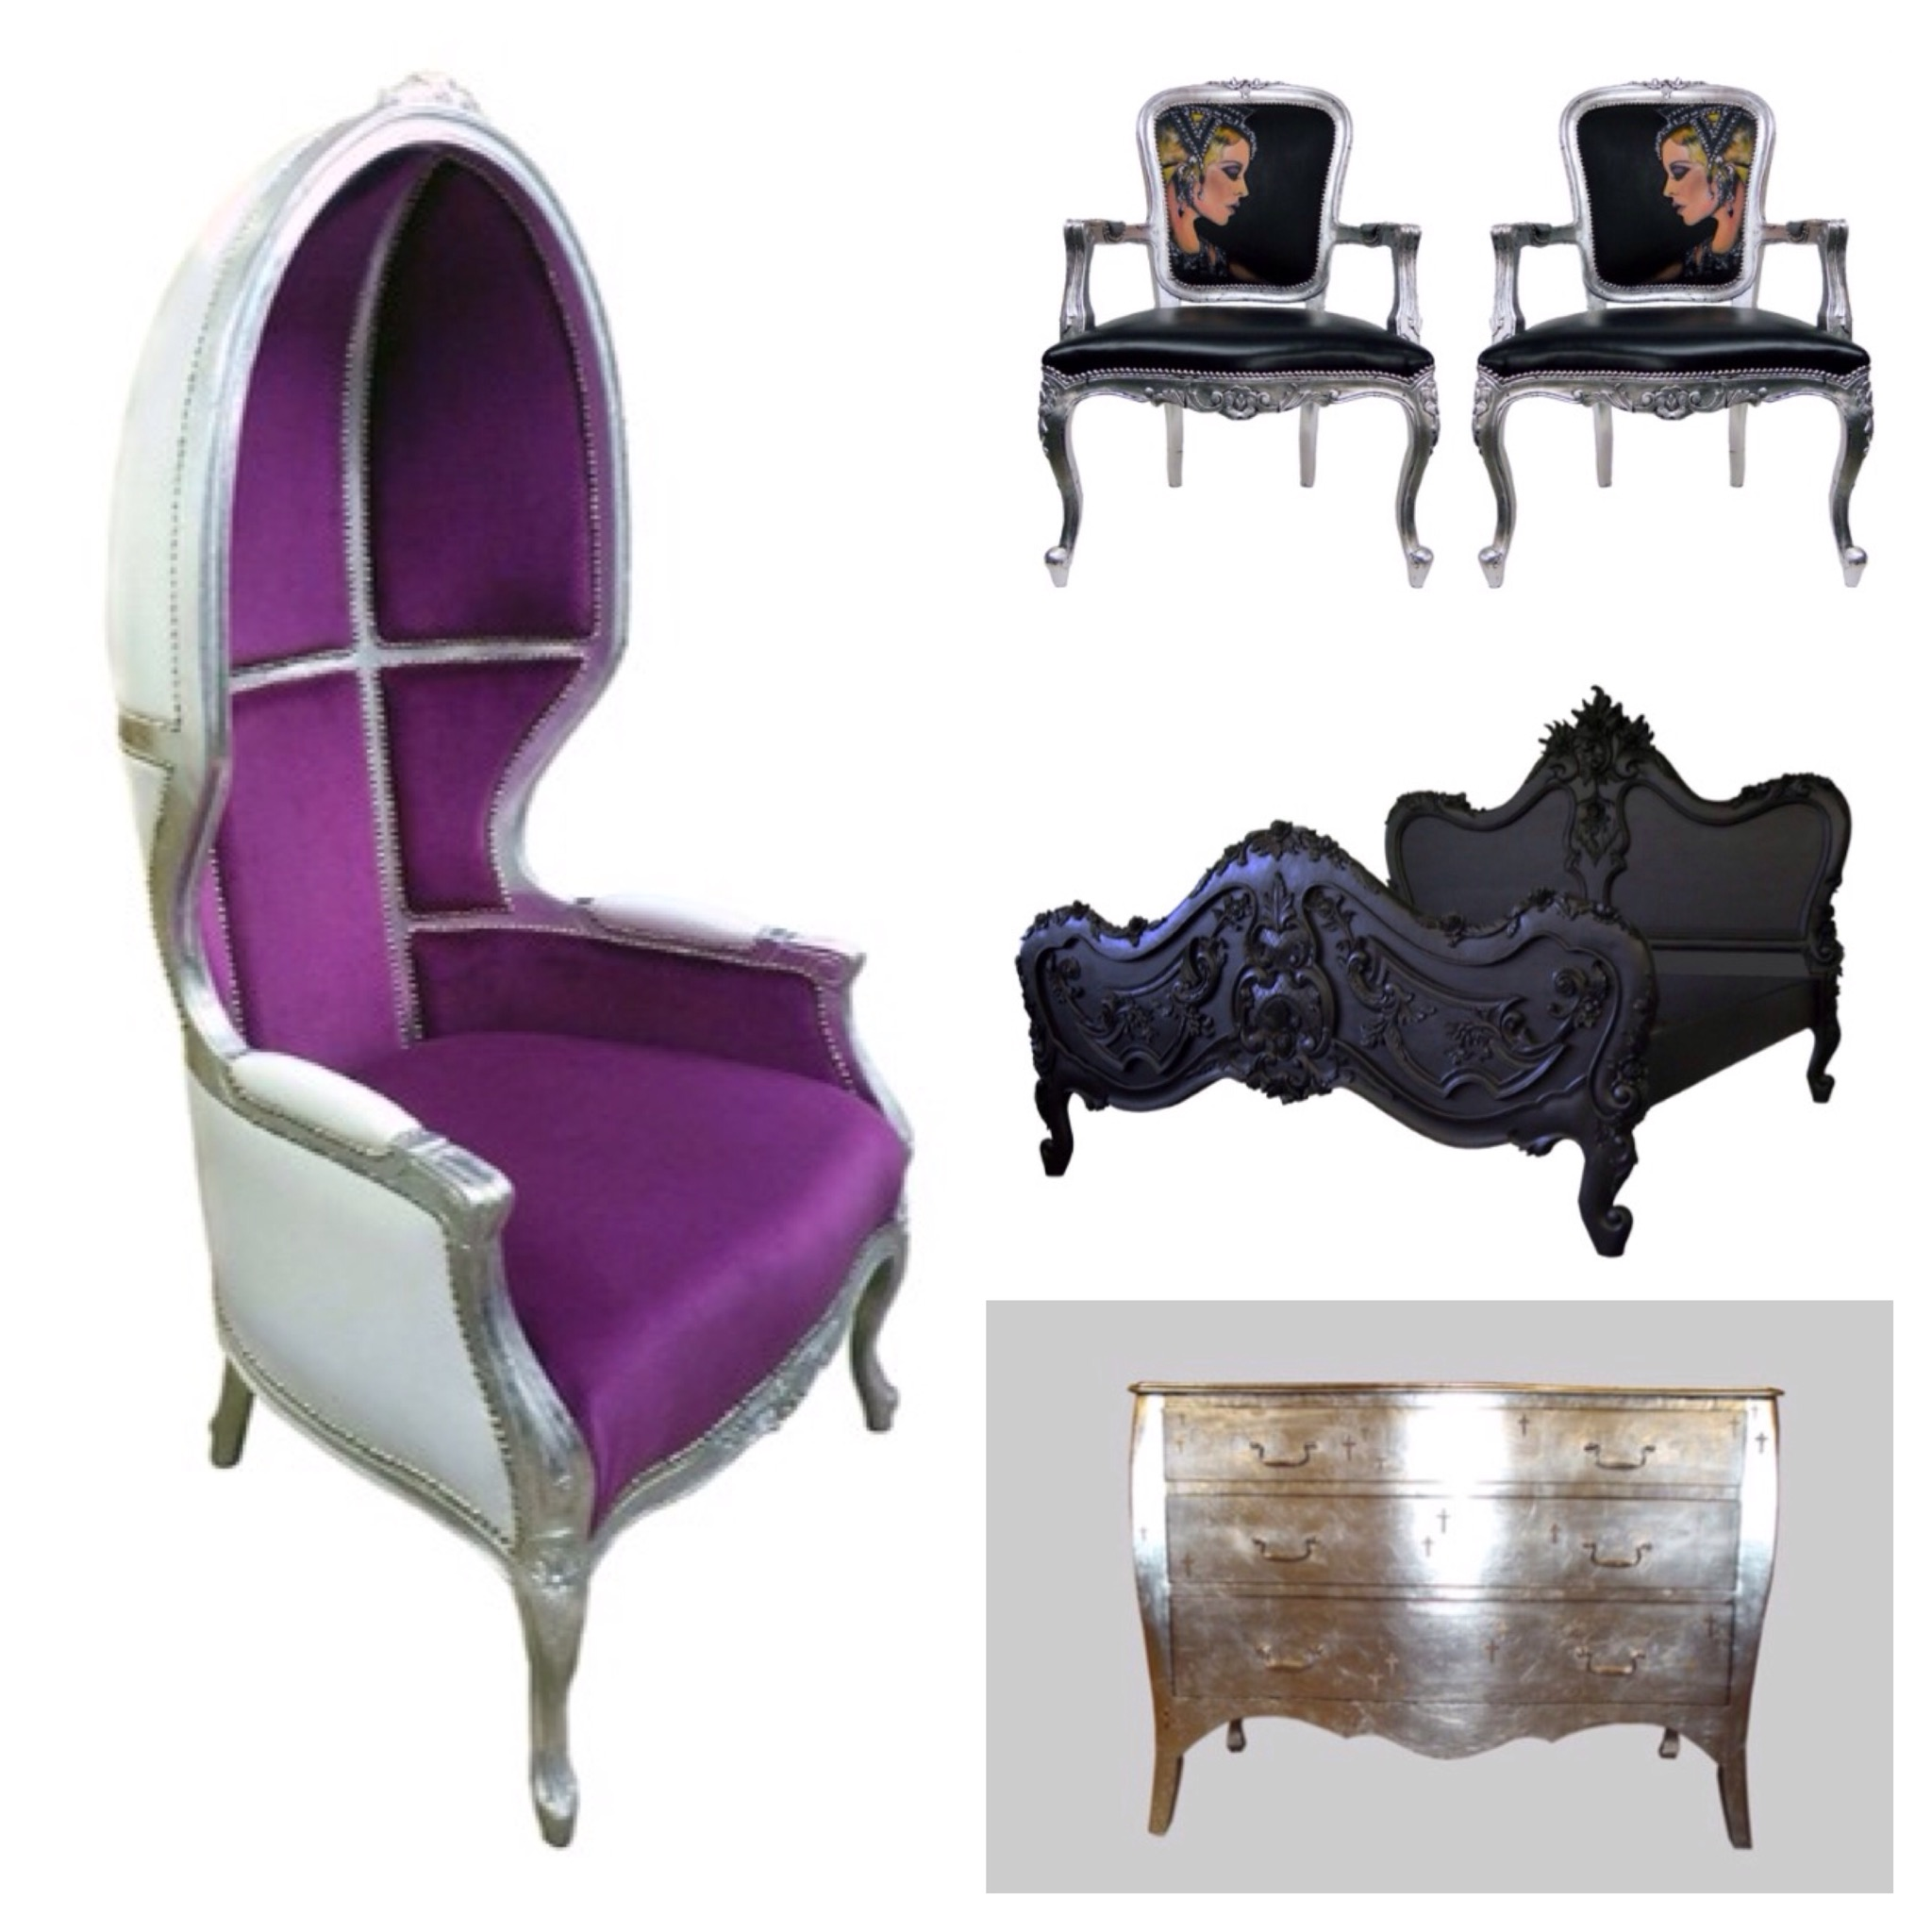 Customized chairs table and bed by Jimmie Martin. Home decorations